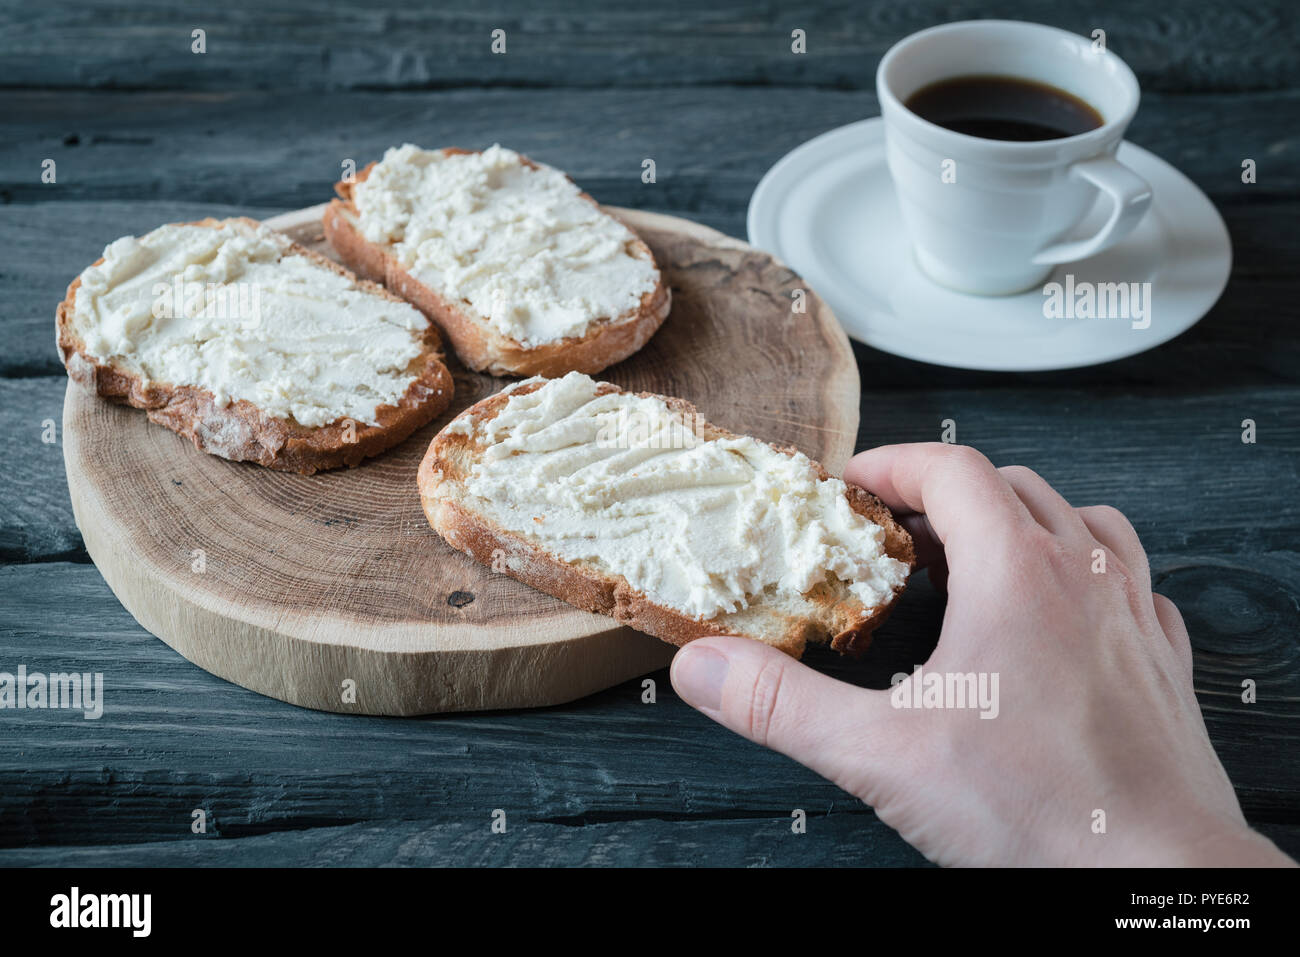 Hand holds homemade sandwiche with cream-cheese over a black wooden table. Wooden stand with sandwiches. Breakfast with black coffee. - Stock Image